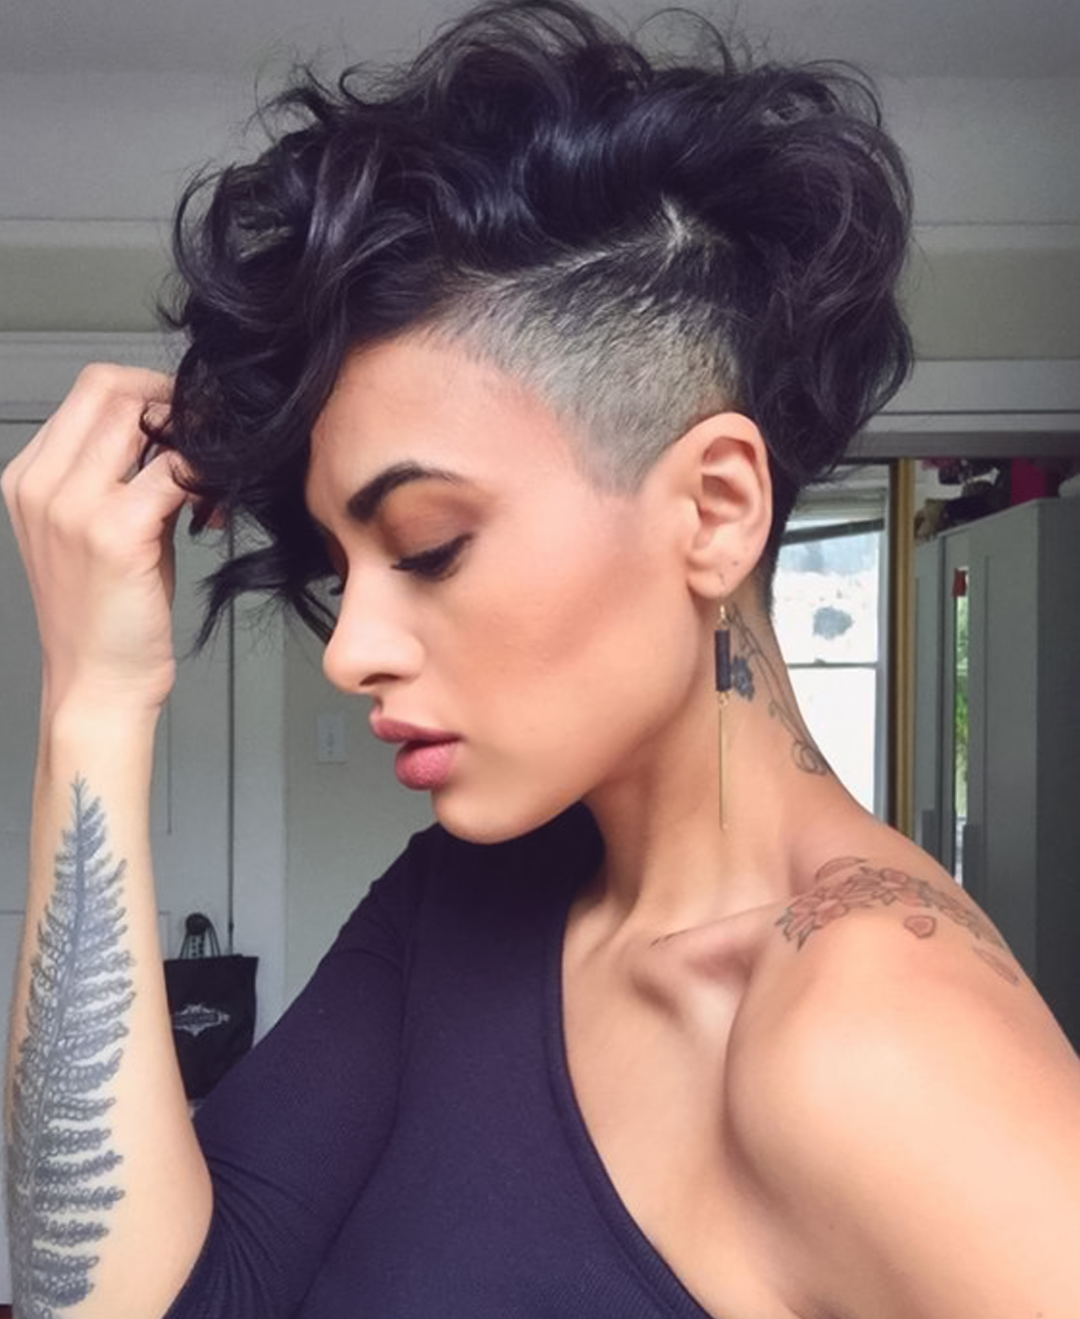 woman with buzzed side, curly hair